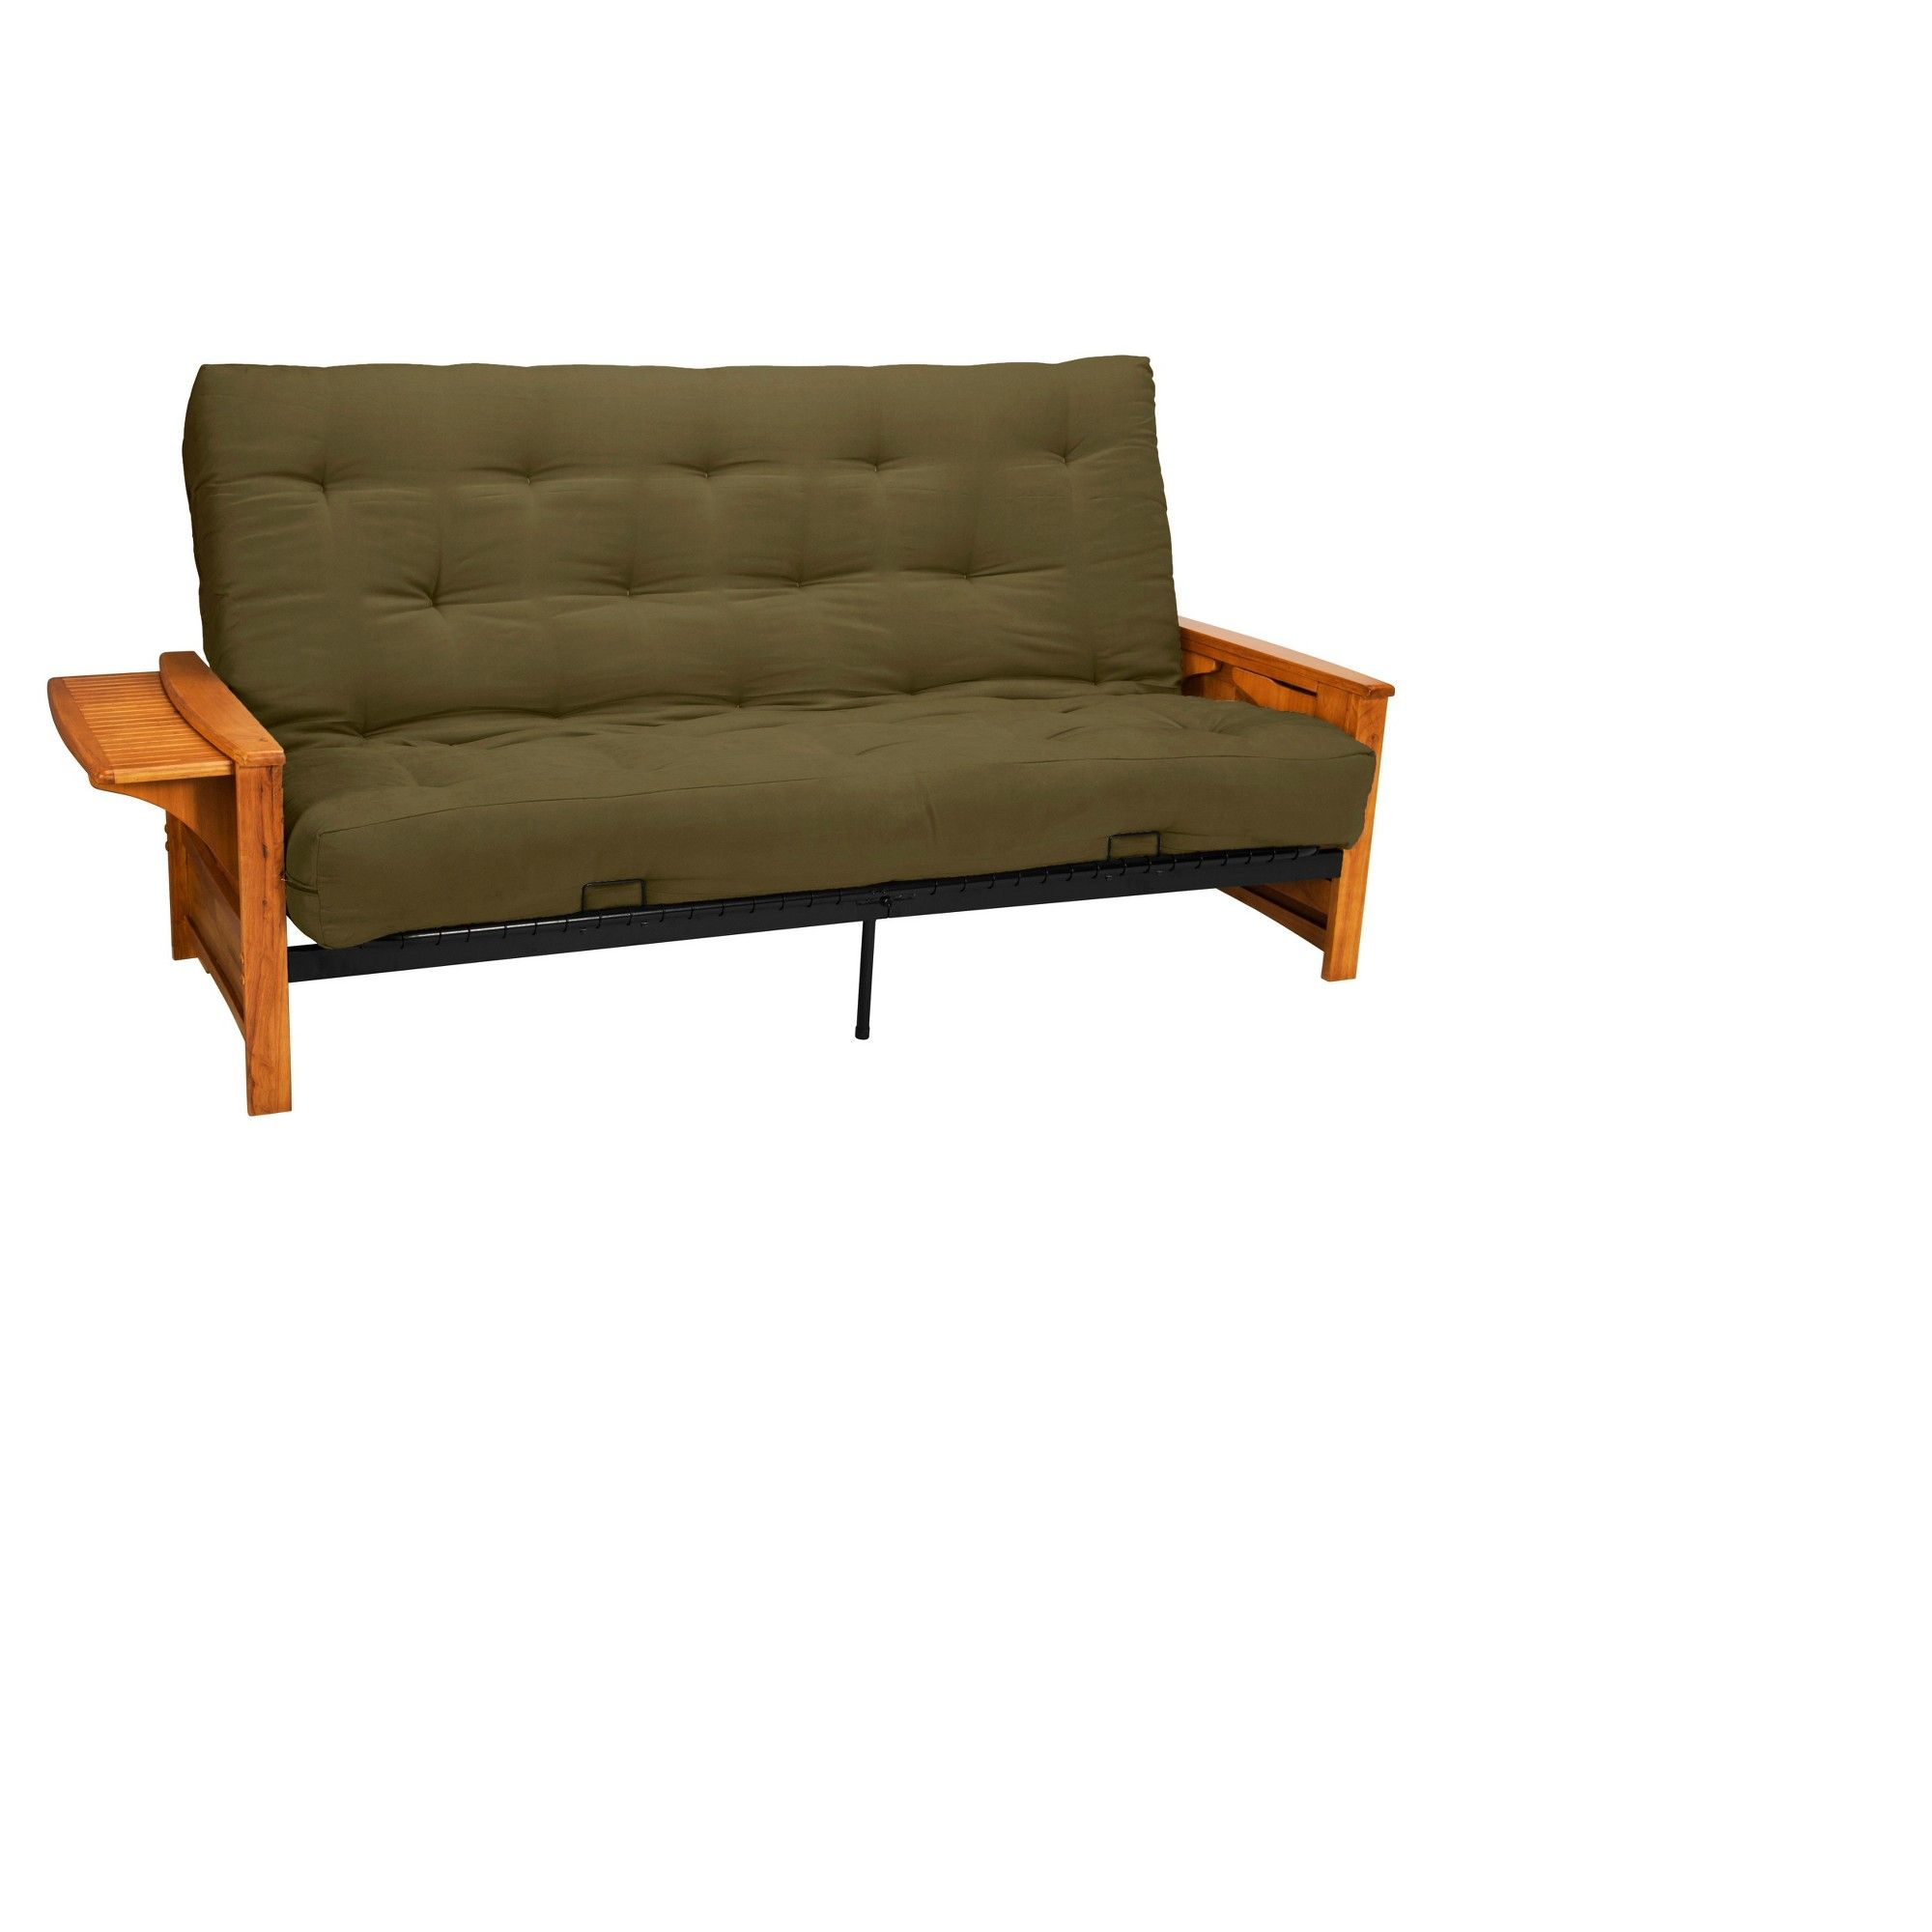 Brentwood Mission Style Futon Sofa Sleeper Bed Frame Full Size